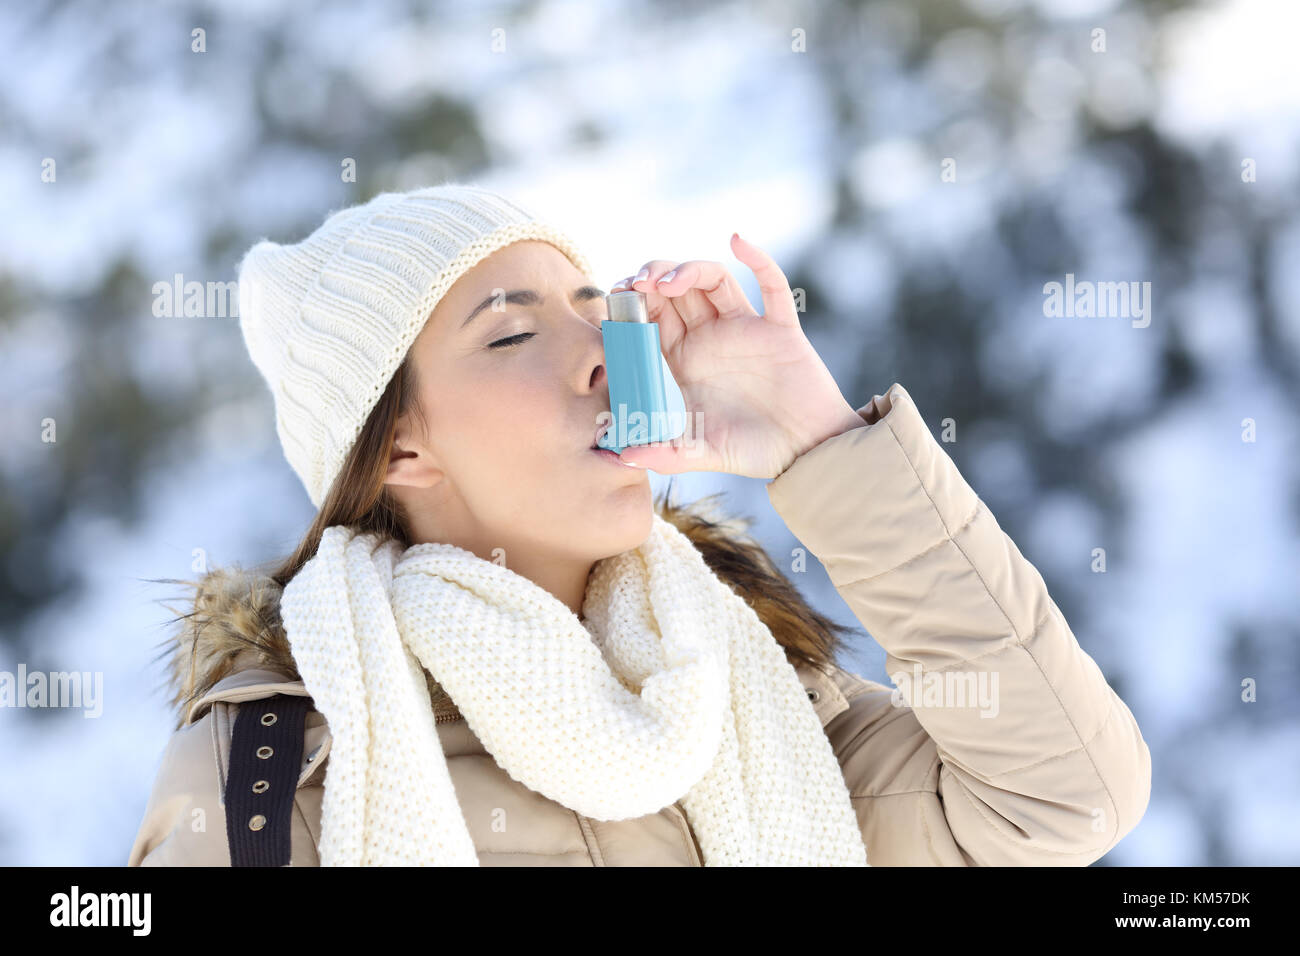 Portrait of a woman using an asthma inhaler in a cold winter with a snowy mountain in the background - Stock Image